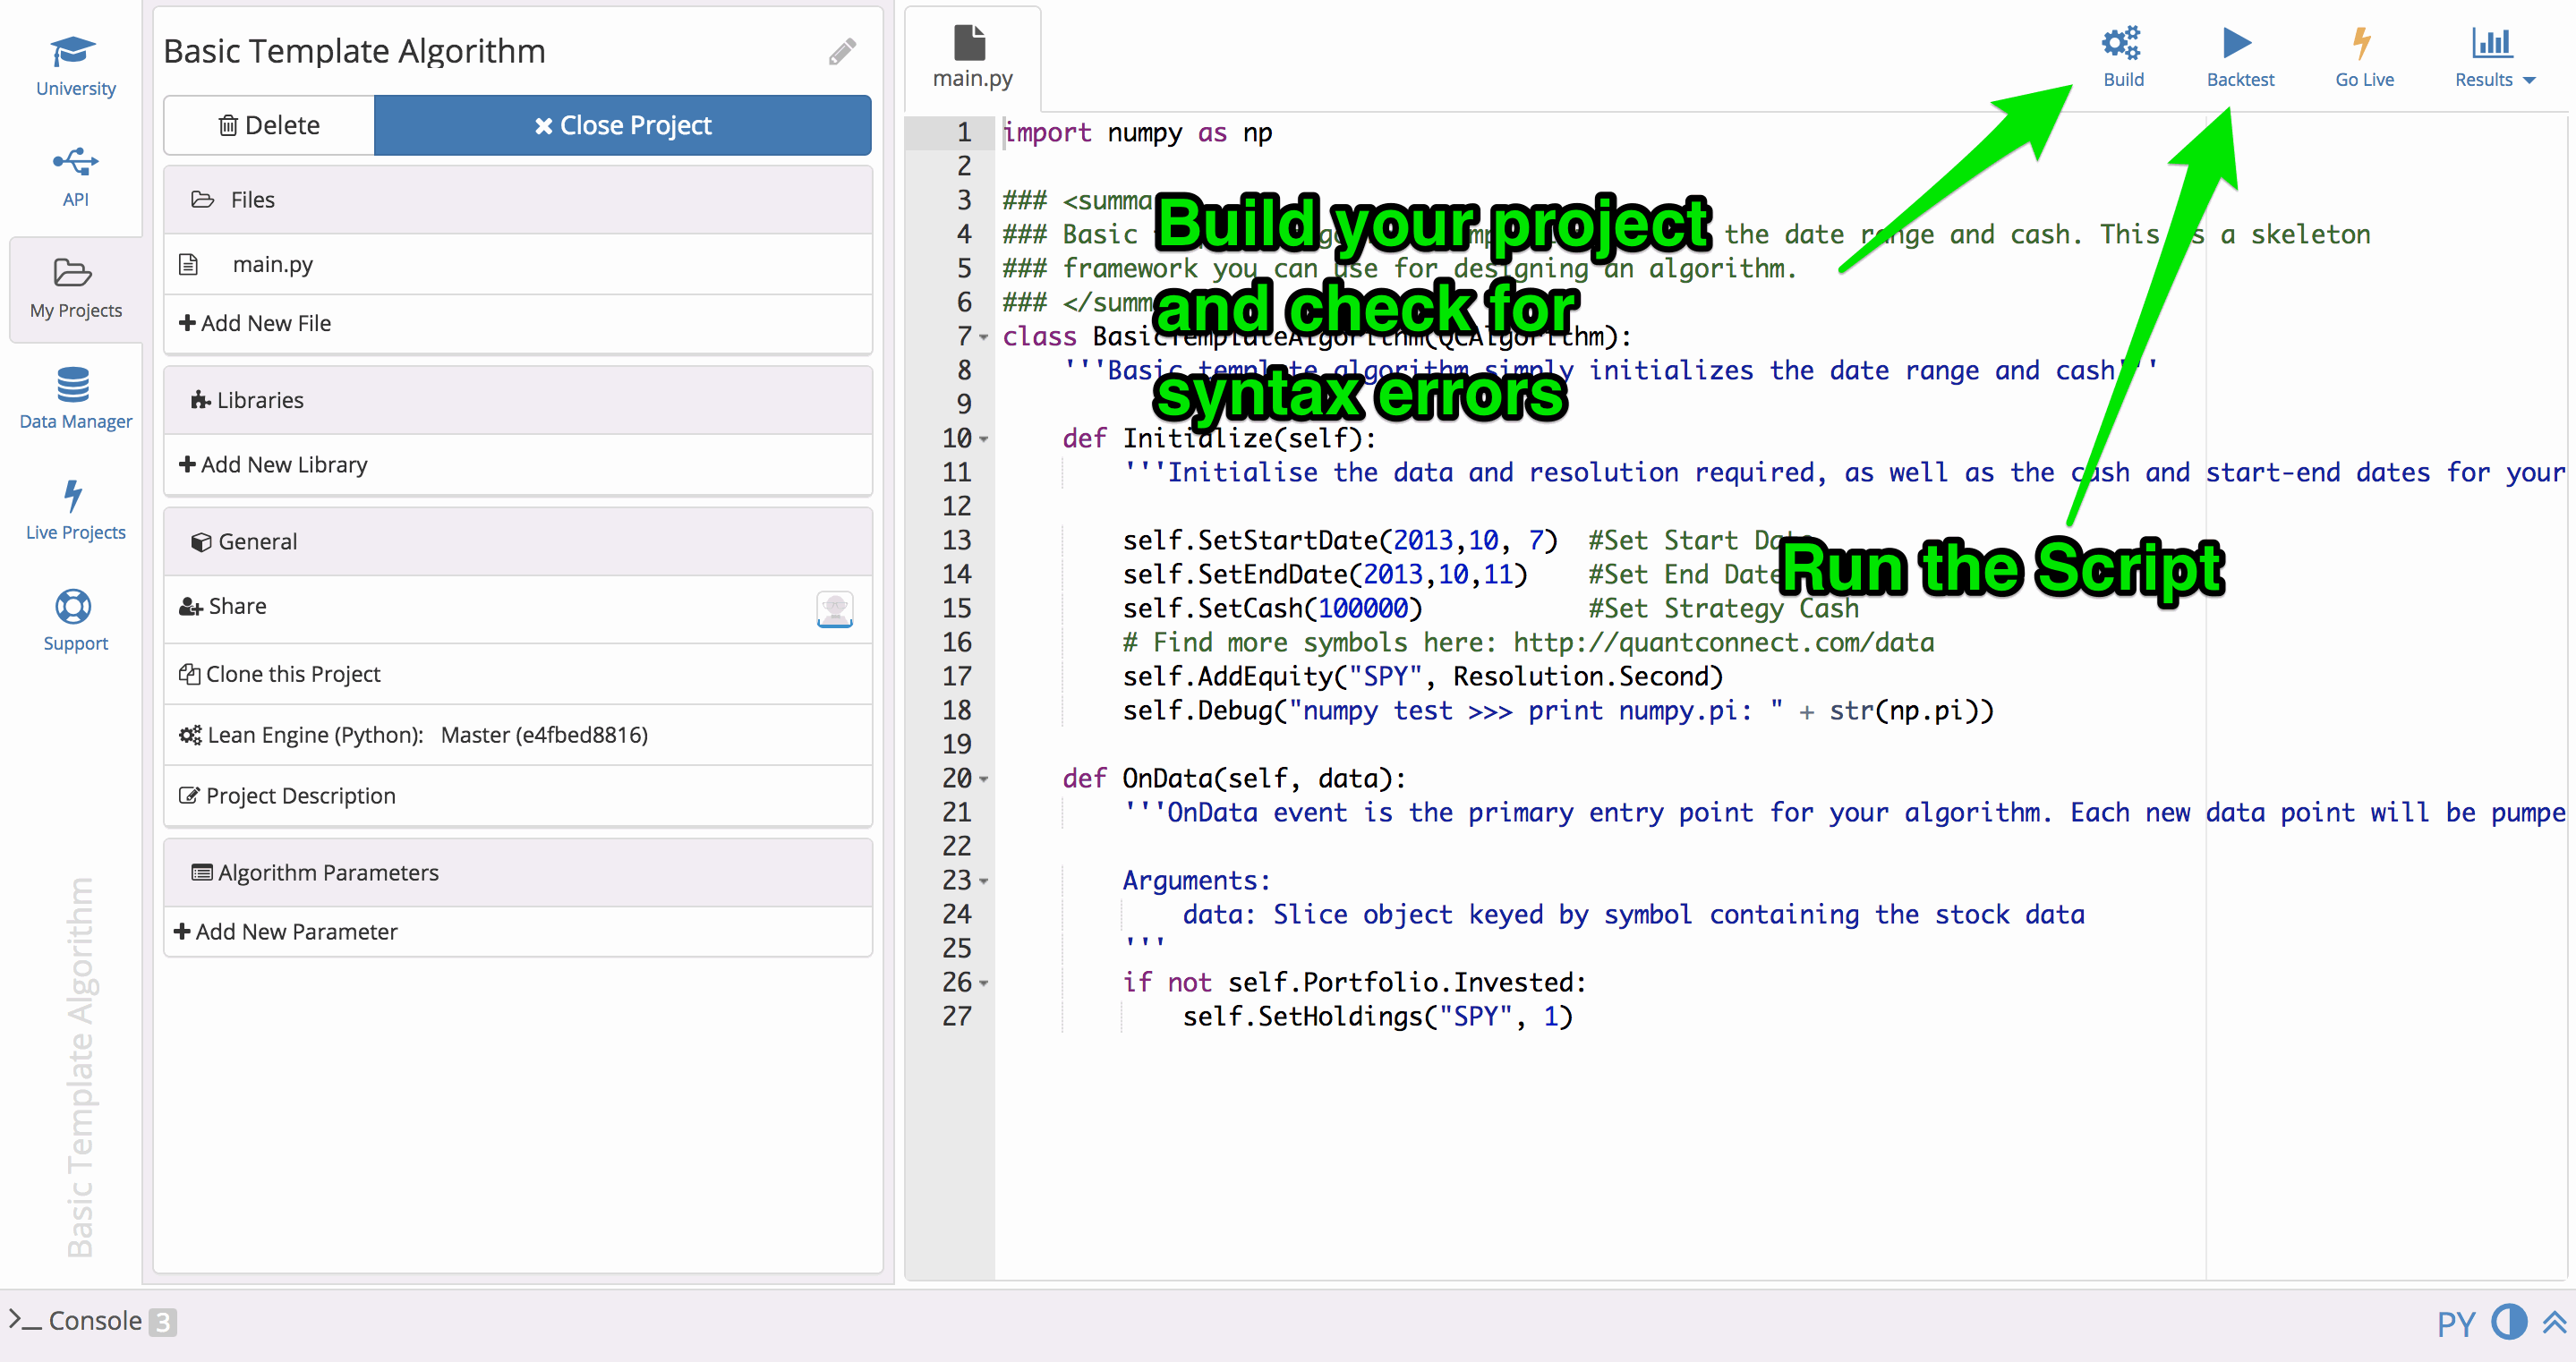 QuantConnect Tutorial: Build and Run